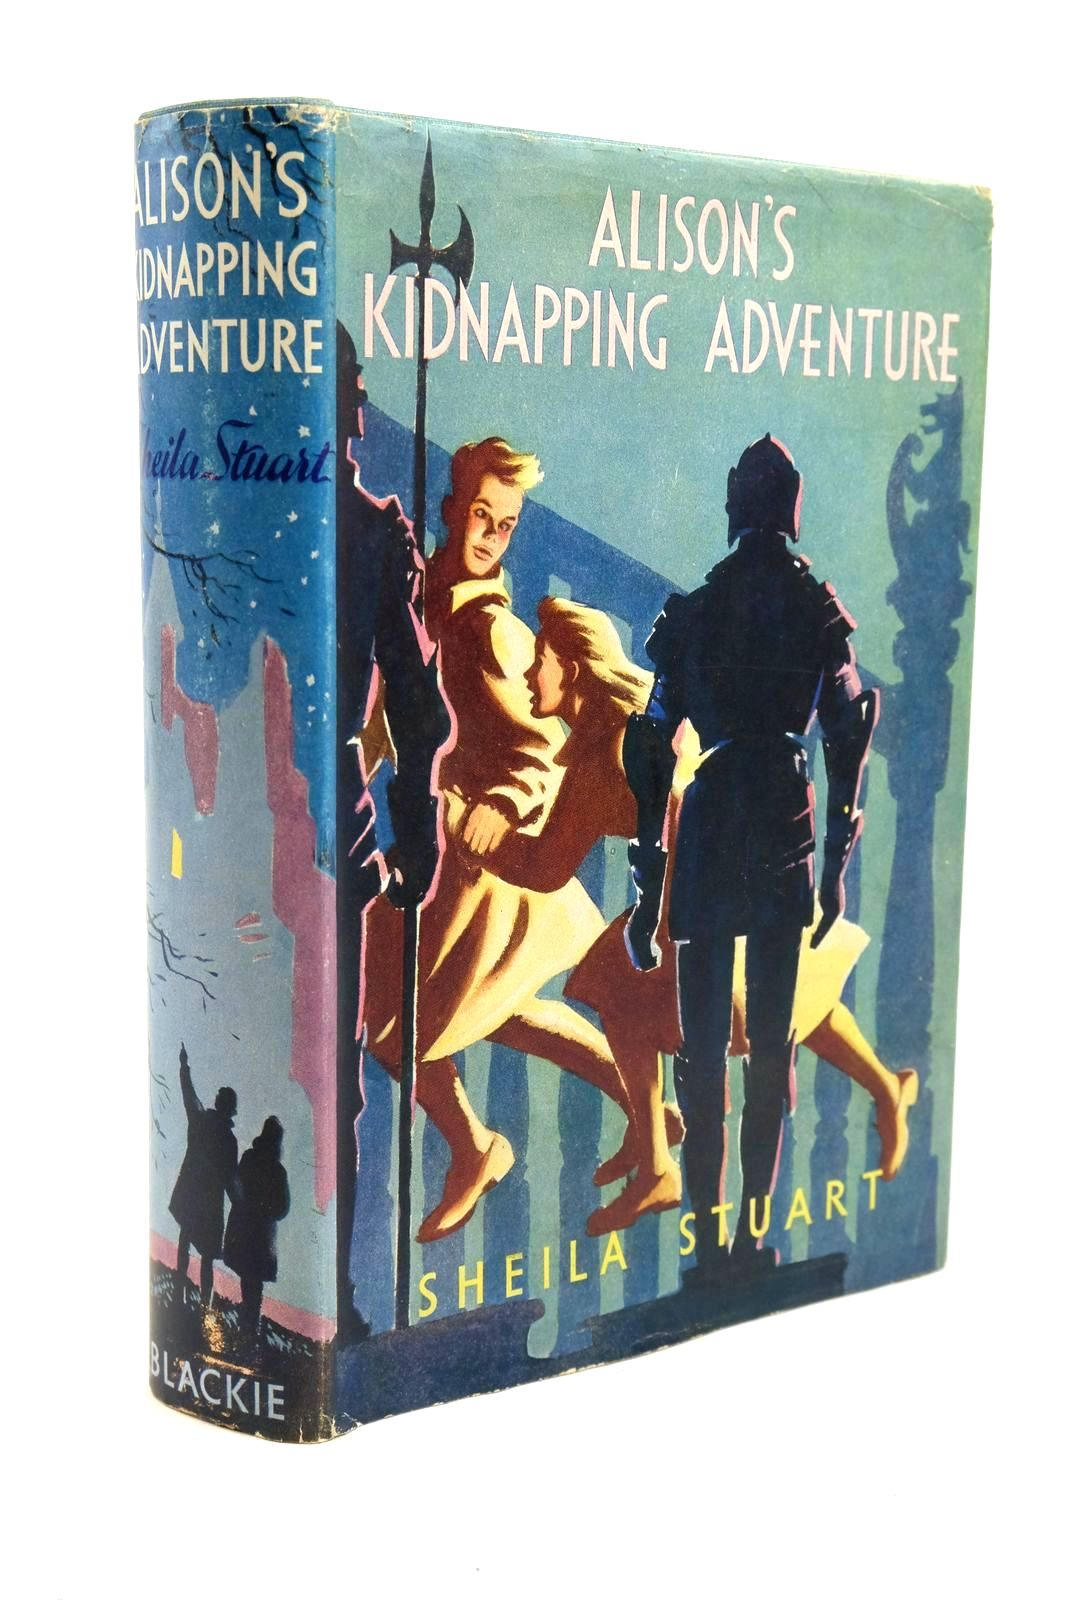 Photo of ALISON'S KIDNAPPING ADVENTURE written by Stuart, Sheila illustrated by Dunlop, Gilbert published by Blackie & Son Ltd. (STOCK CODE: 1321640)  for sale by Stella & Rose's Books